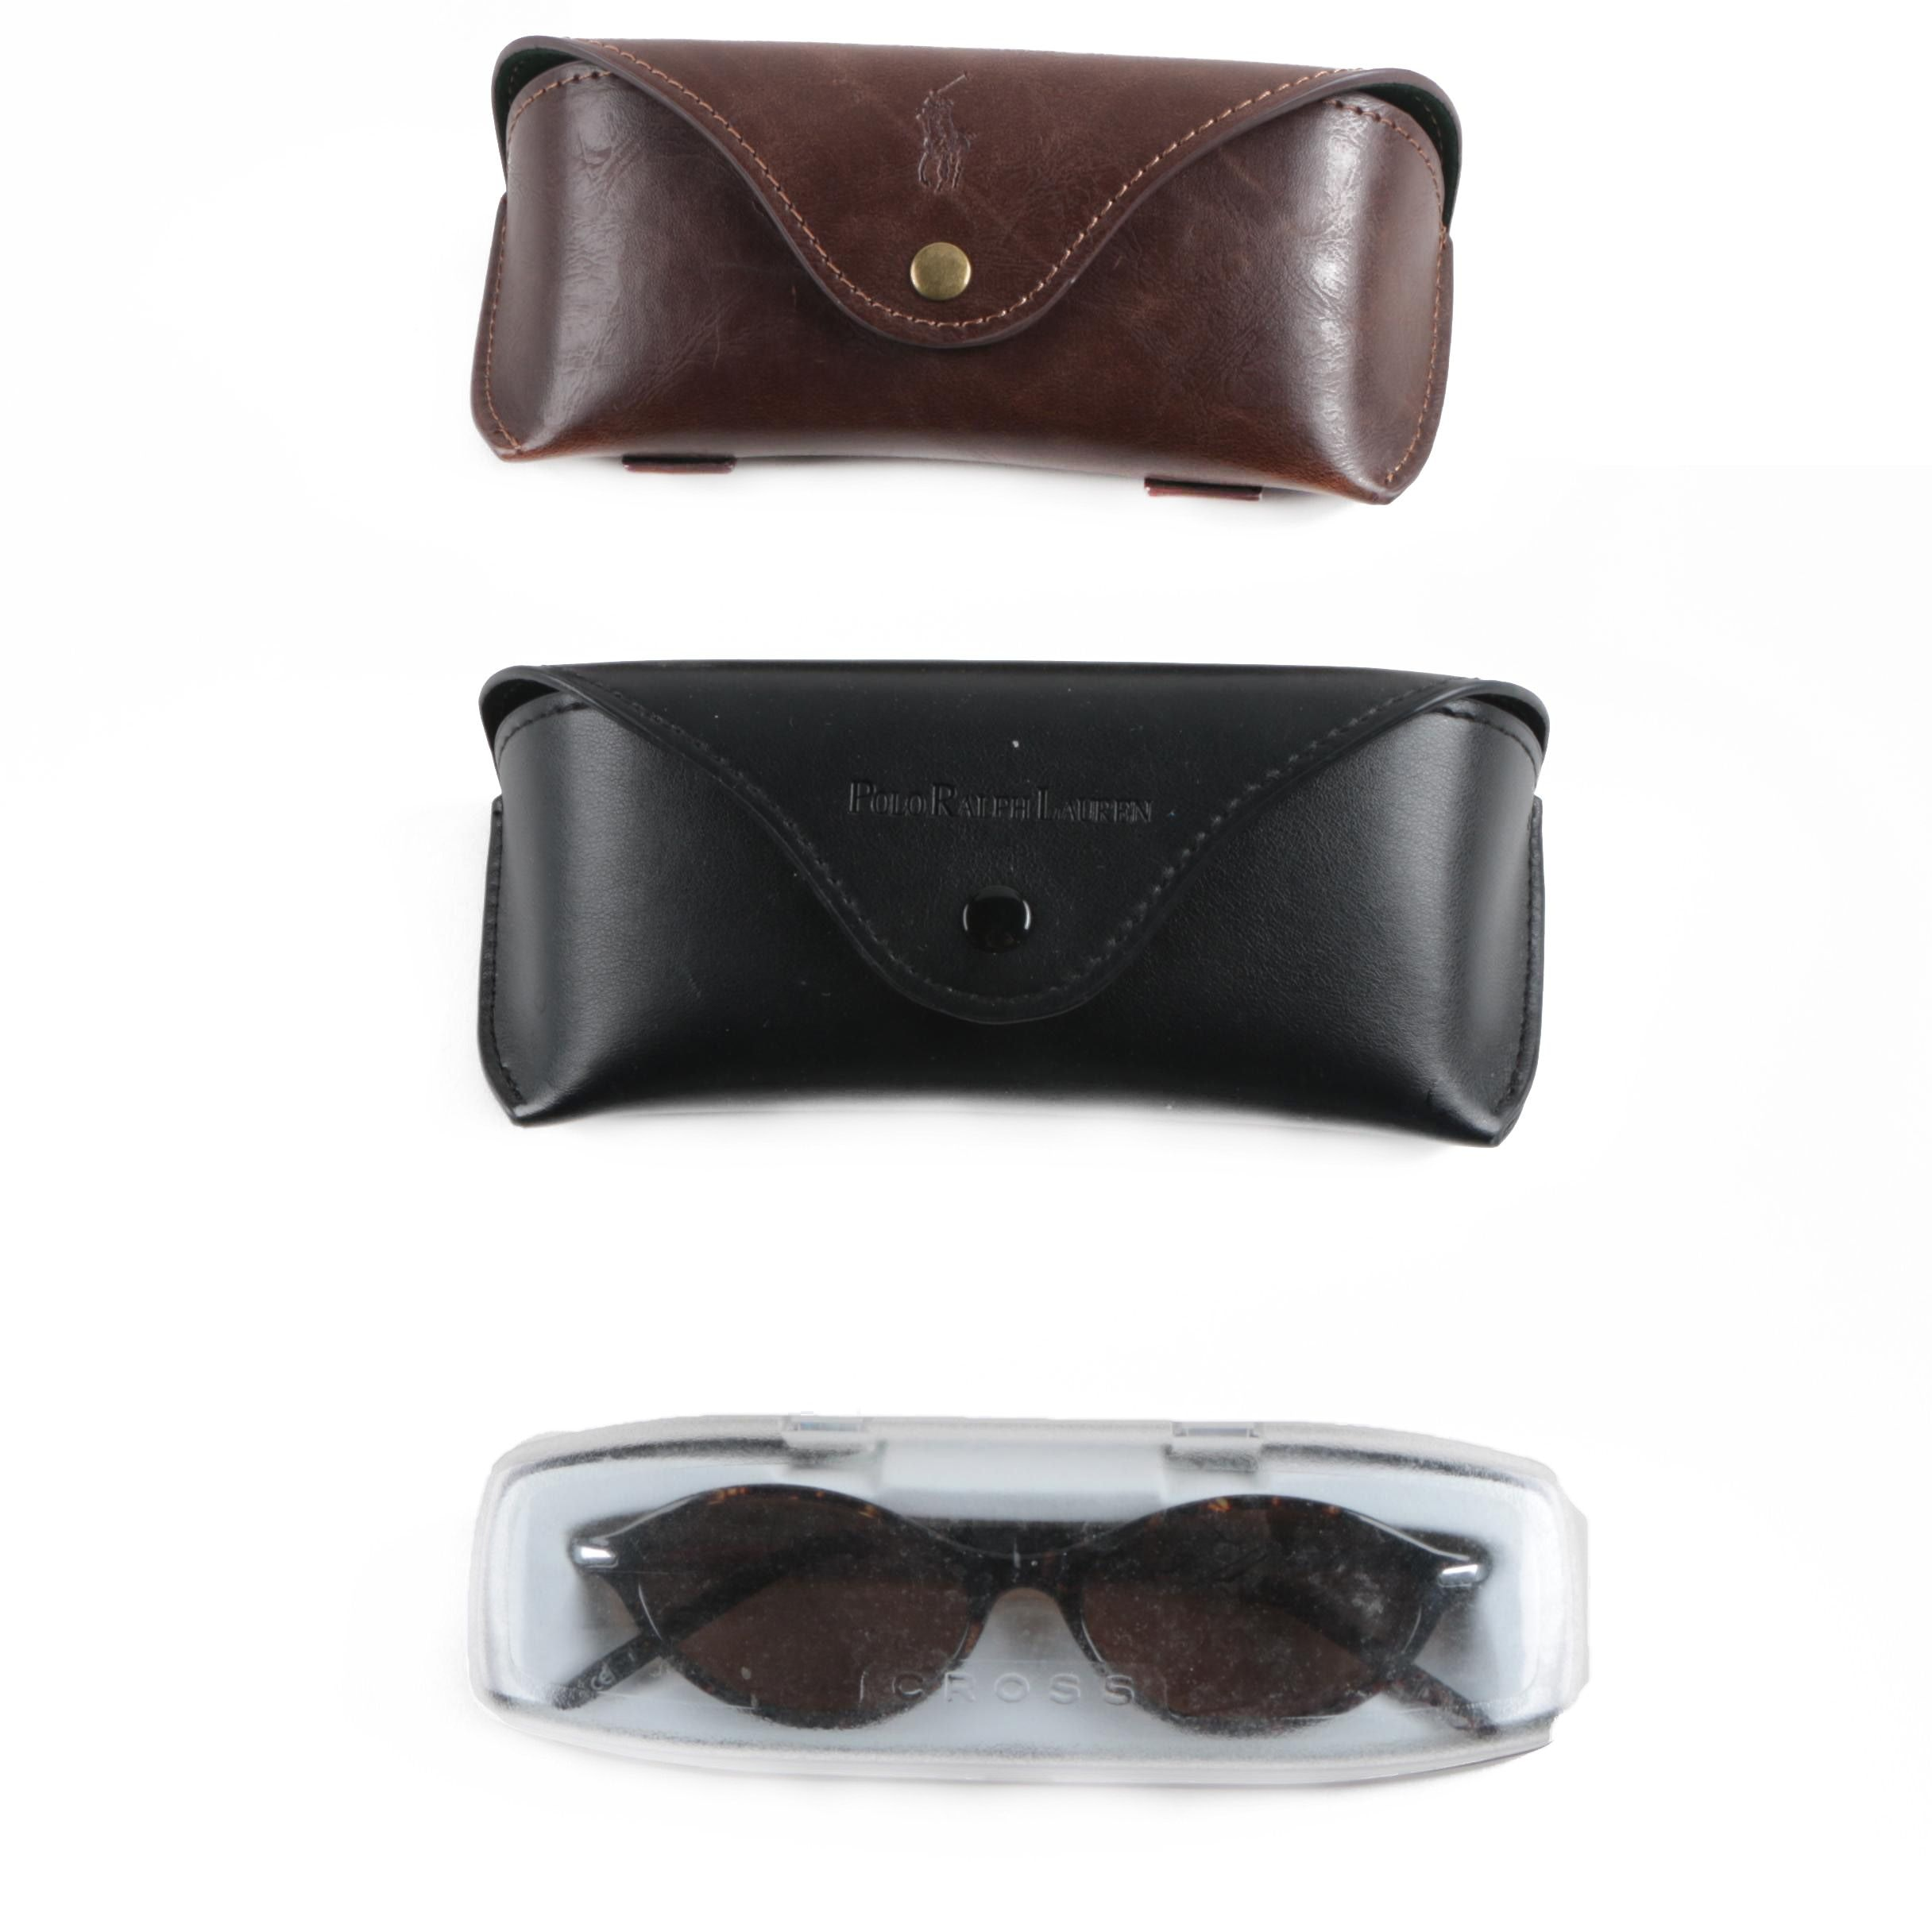 Cross Tortoise Shell Style Reading Sunglasses and Cases